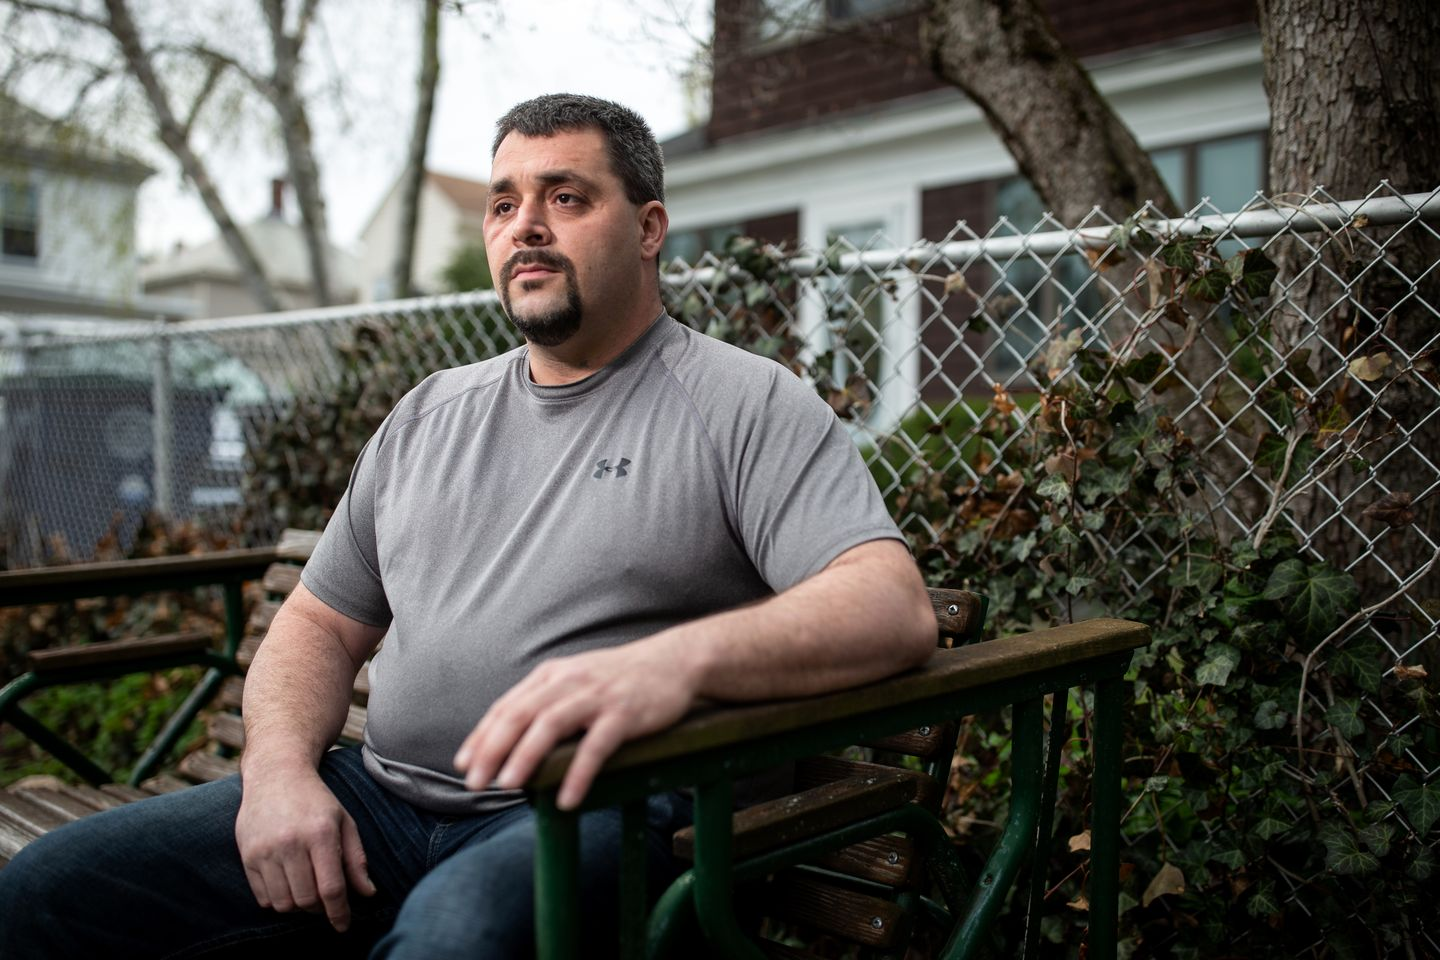 https://www2.bostonglobe.com/metro/2019/04/28/construction-industry-workers-battling-addiction-want-help/EDez0lAHMvmT98k3n4F94O/story.html